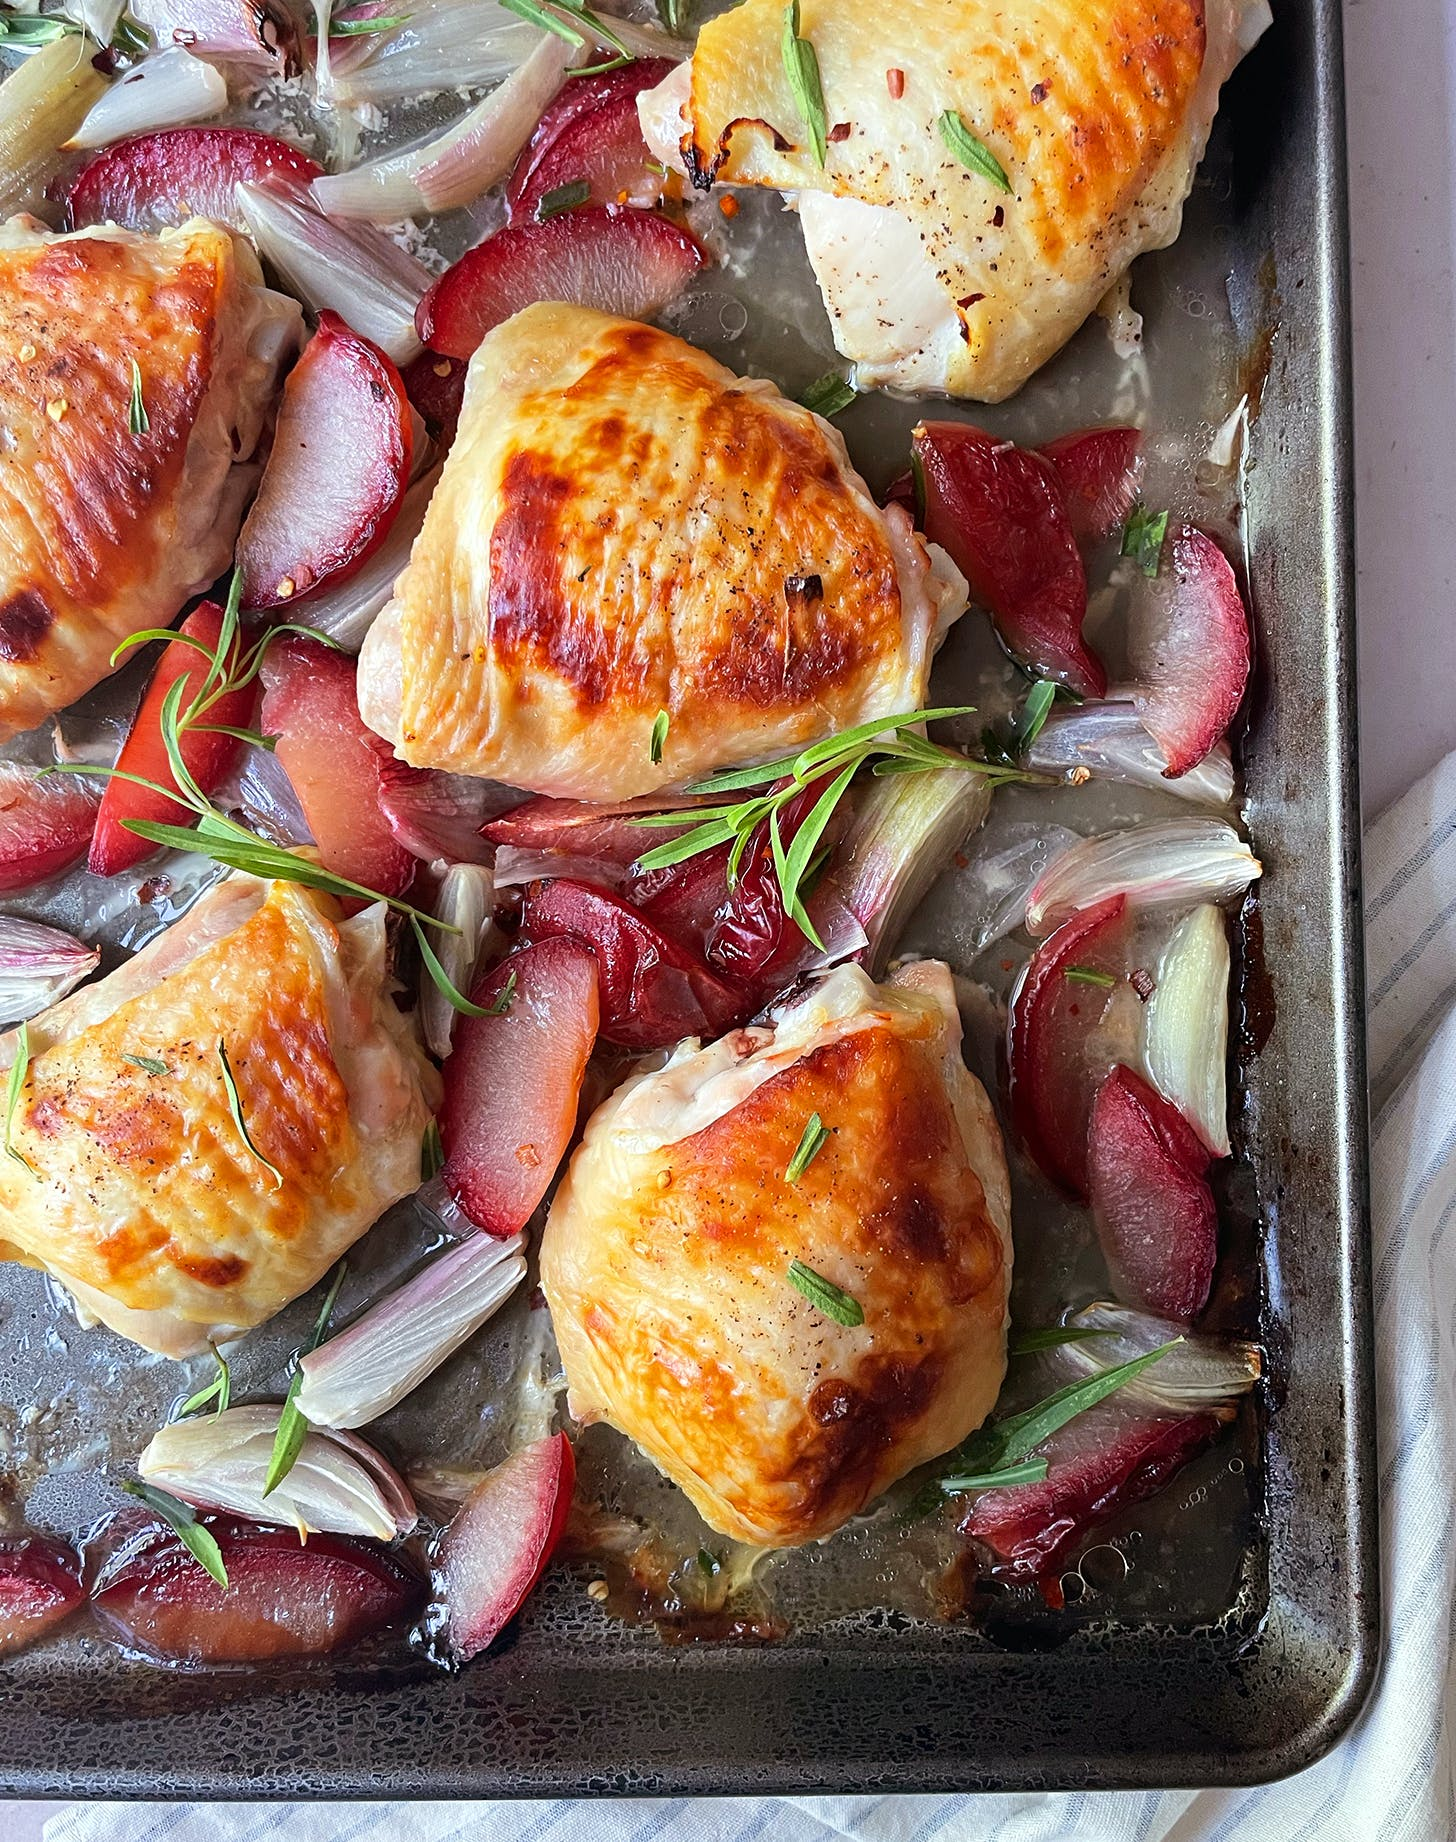 Sheet-Pan Buttermilk Chicken Thighs with Plums, Shallots and Honey